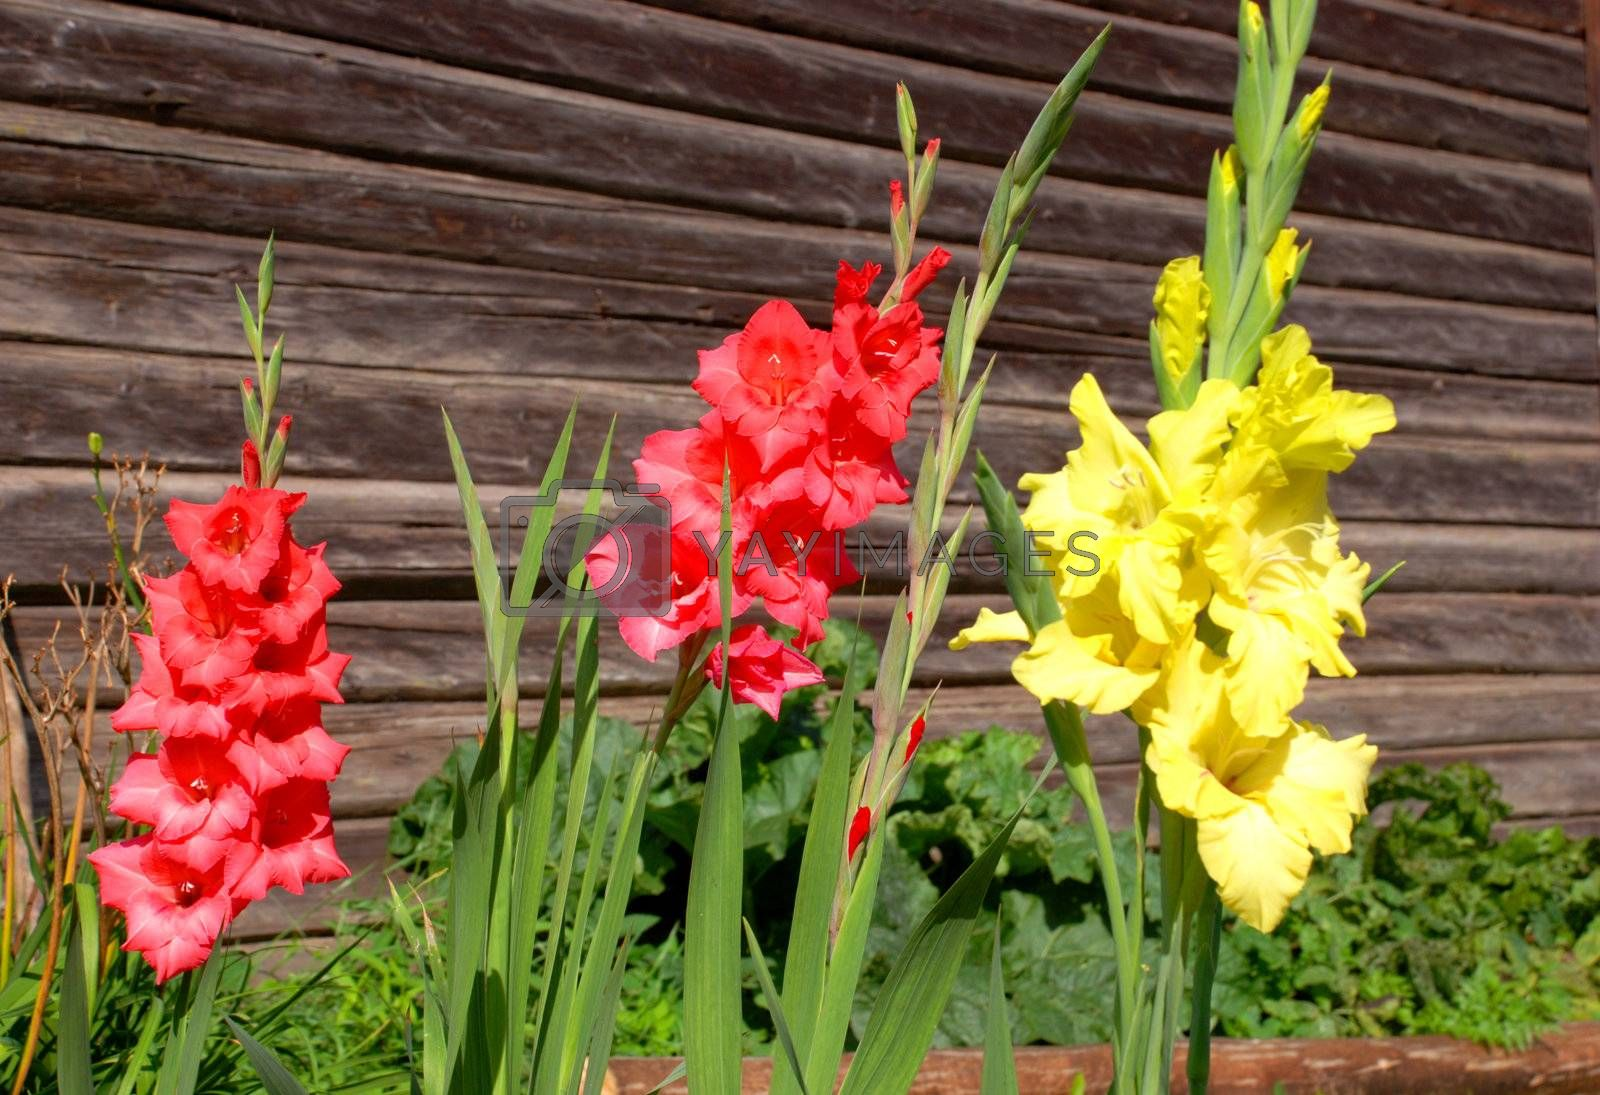 Multicolored gladioli - the traditional old village flower